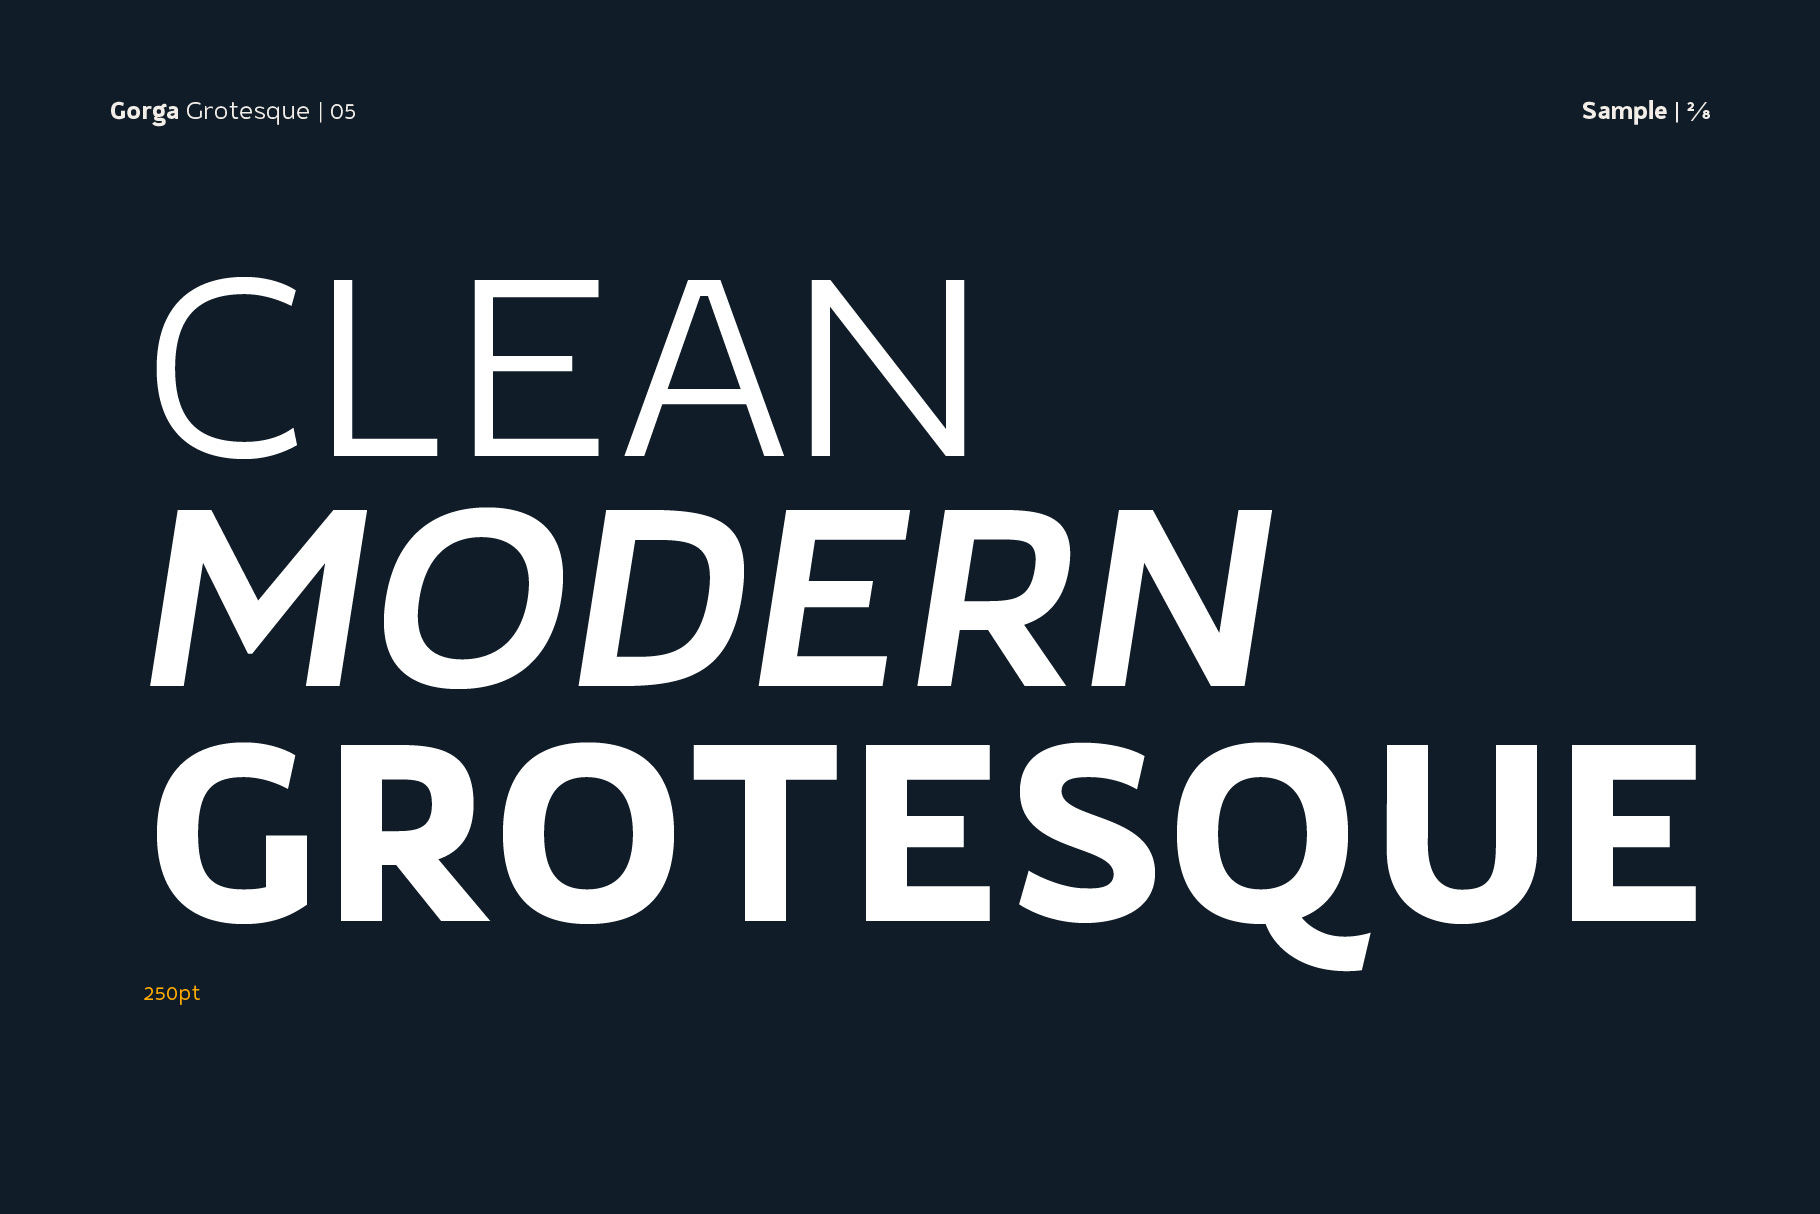 Gorga Grotesque Sans Serif Fonts